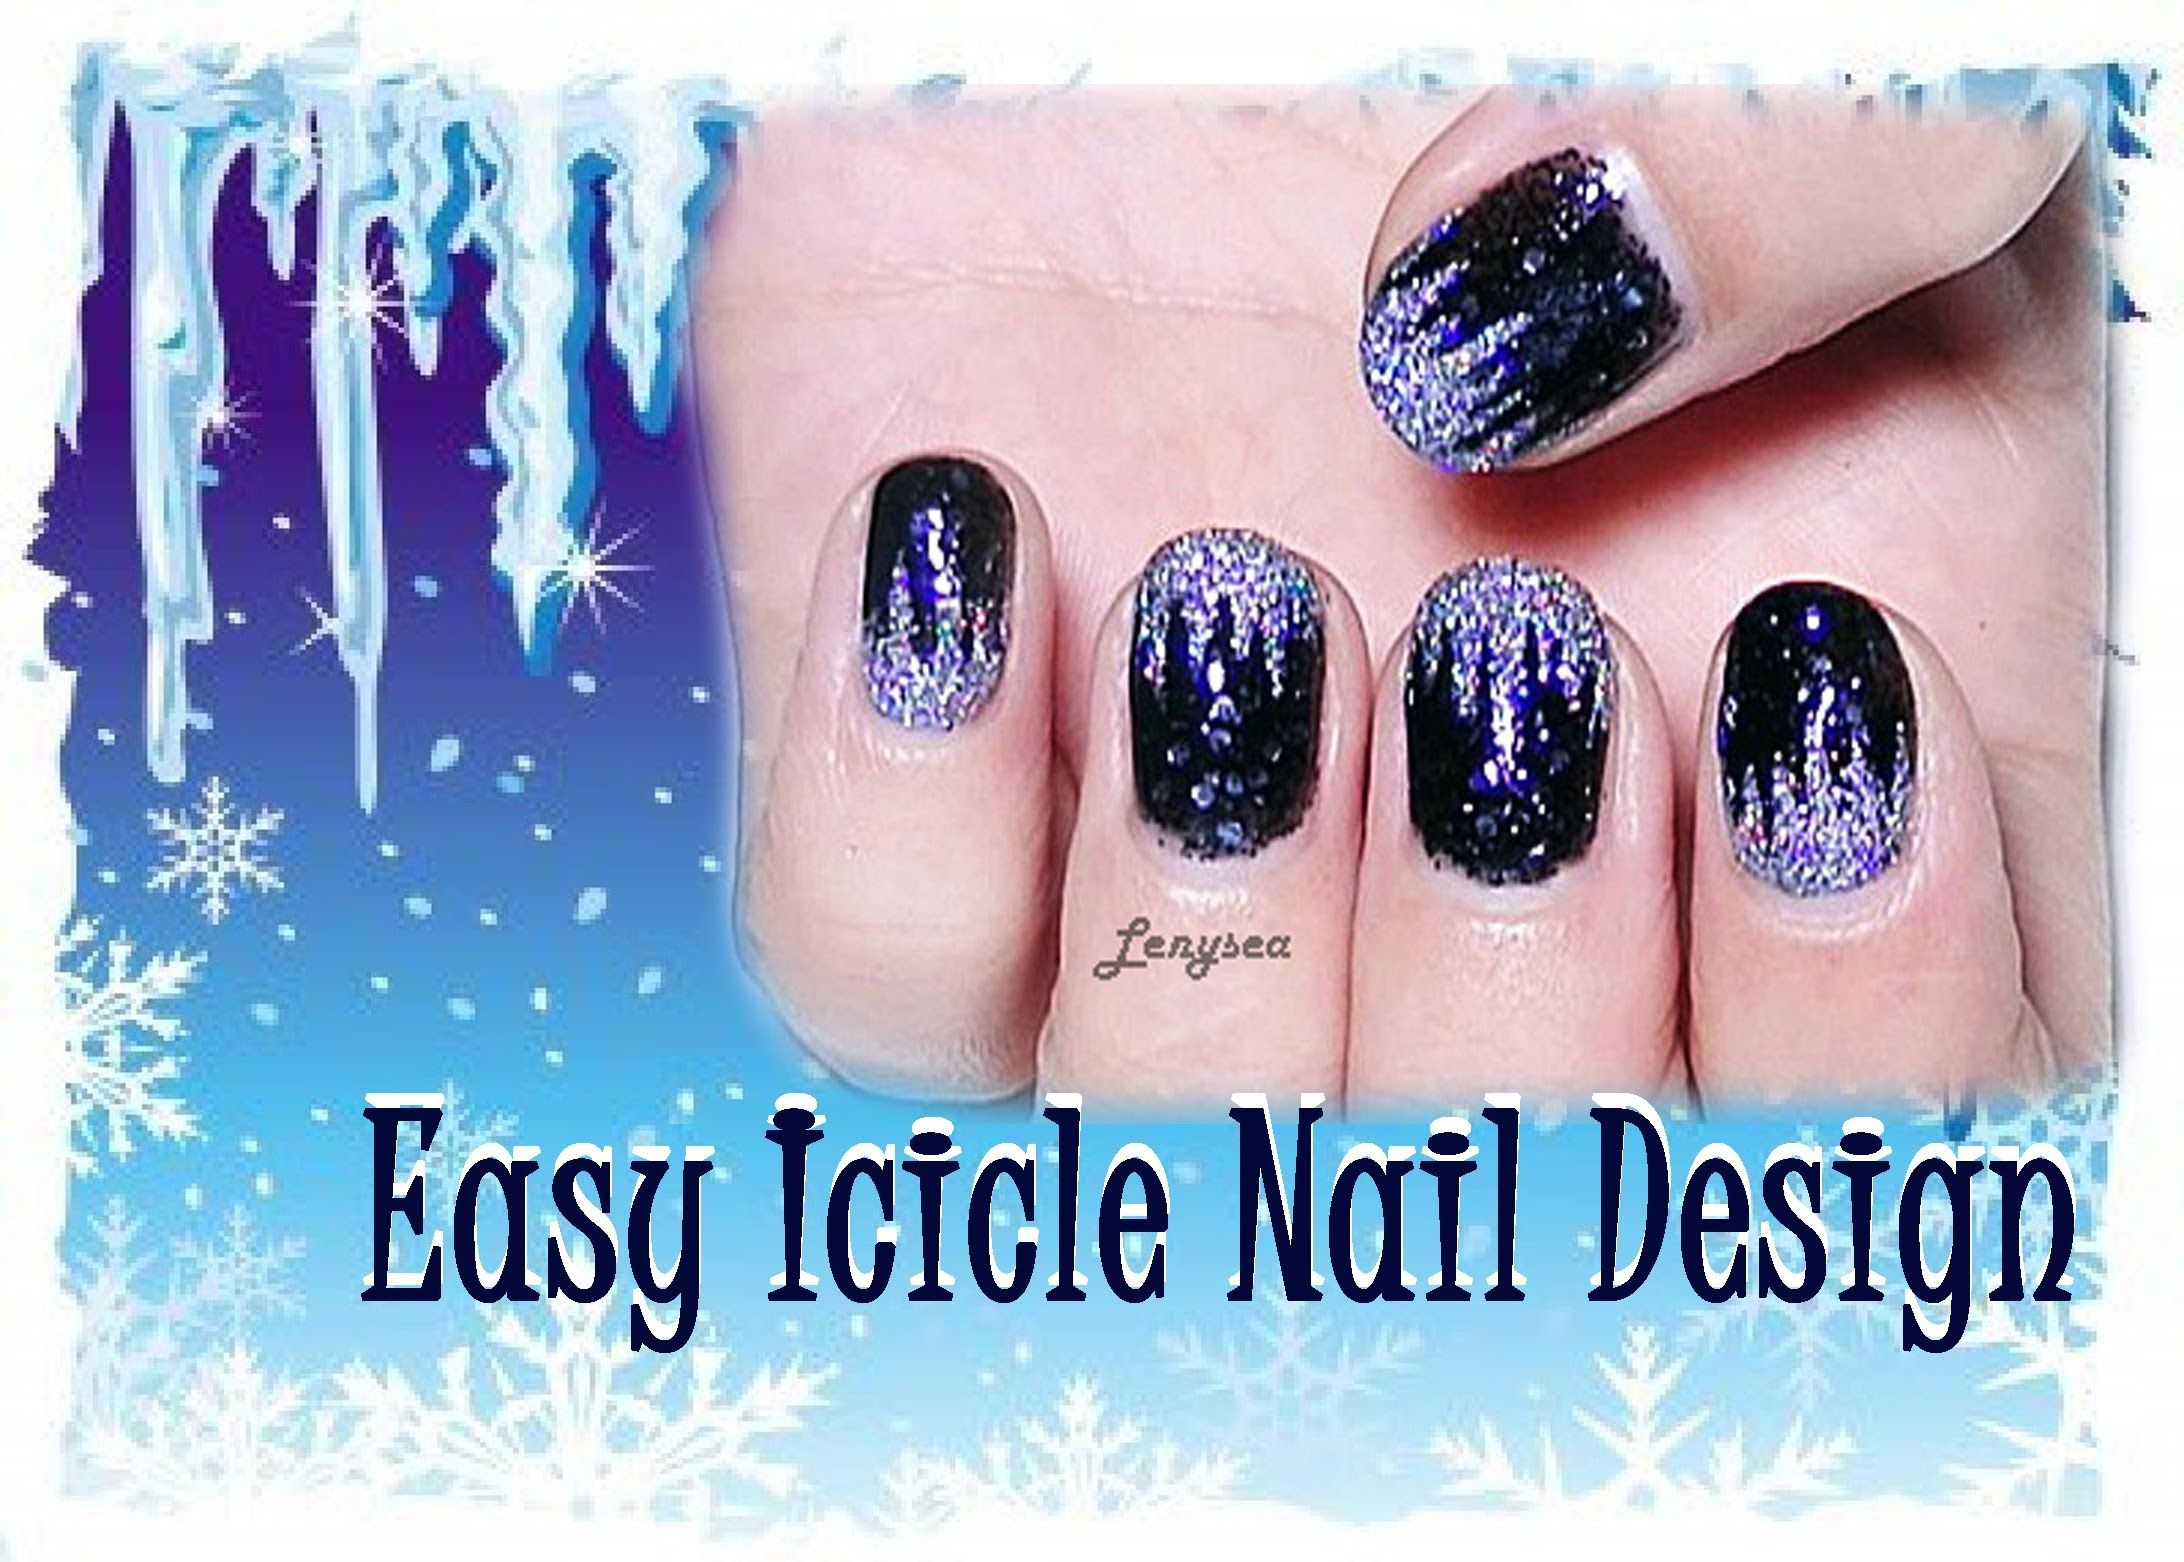 Icicle nail design for short nails day 3 nail art icicle nail design for short nails day 3 prinsesfo Image collections